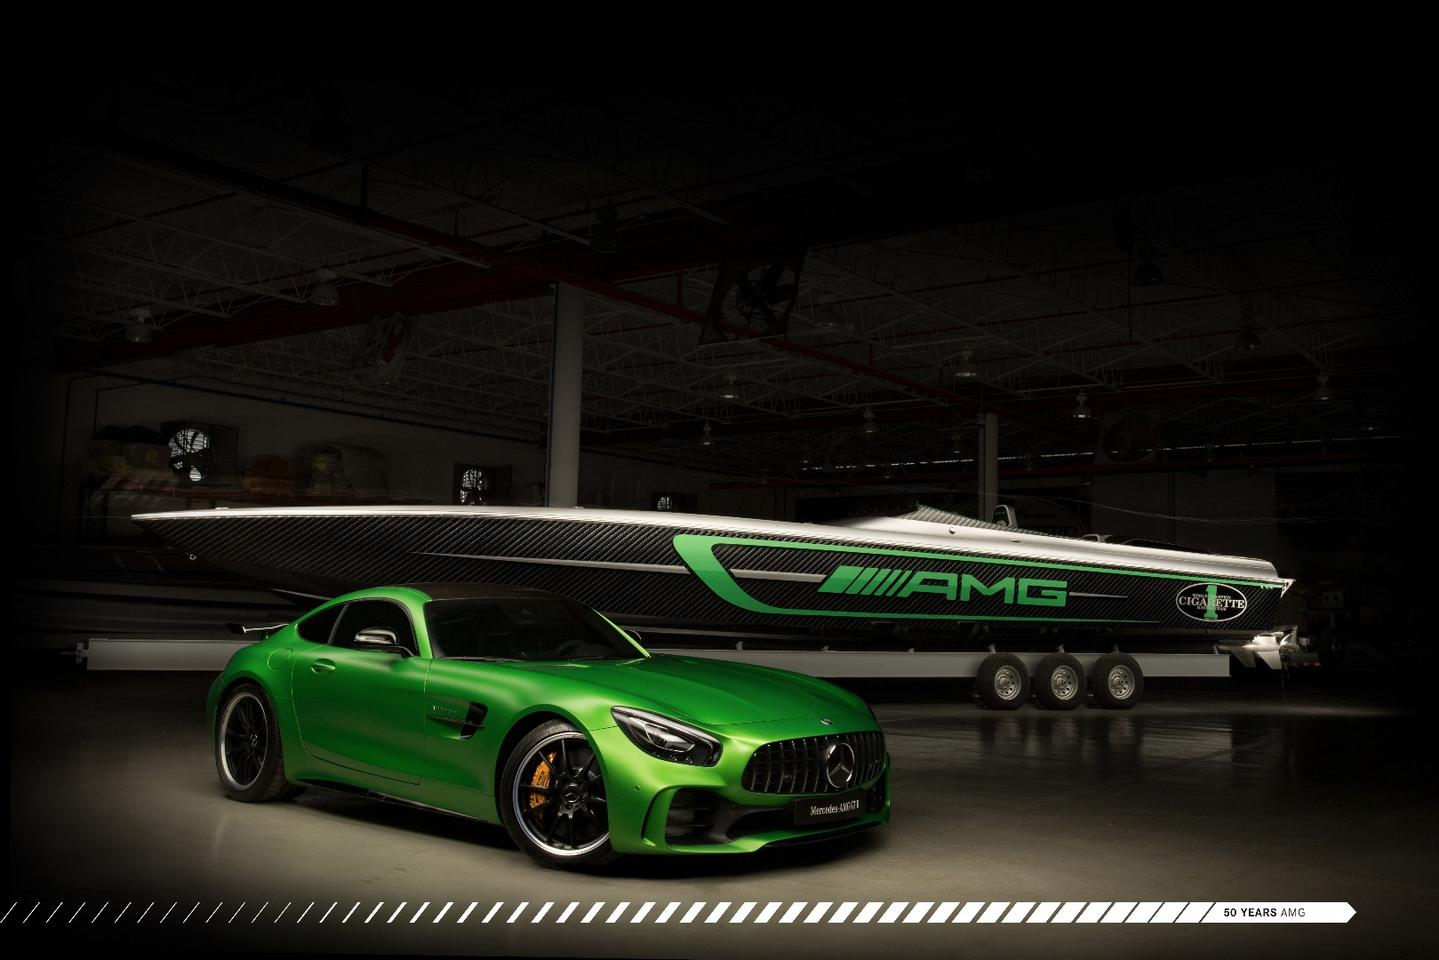 The Marauder AMG is inspired by the AMG GT R